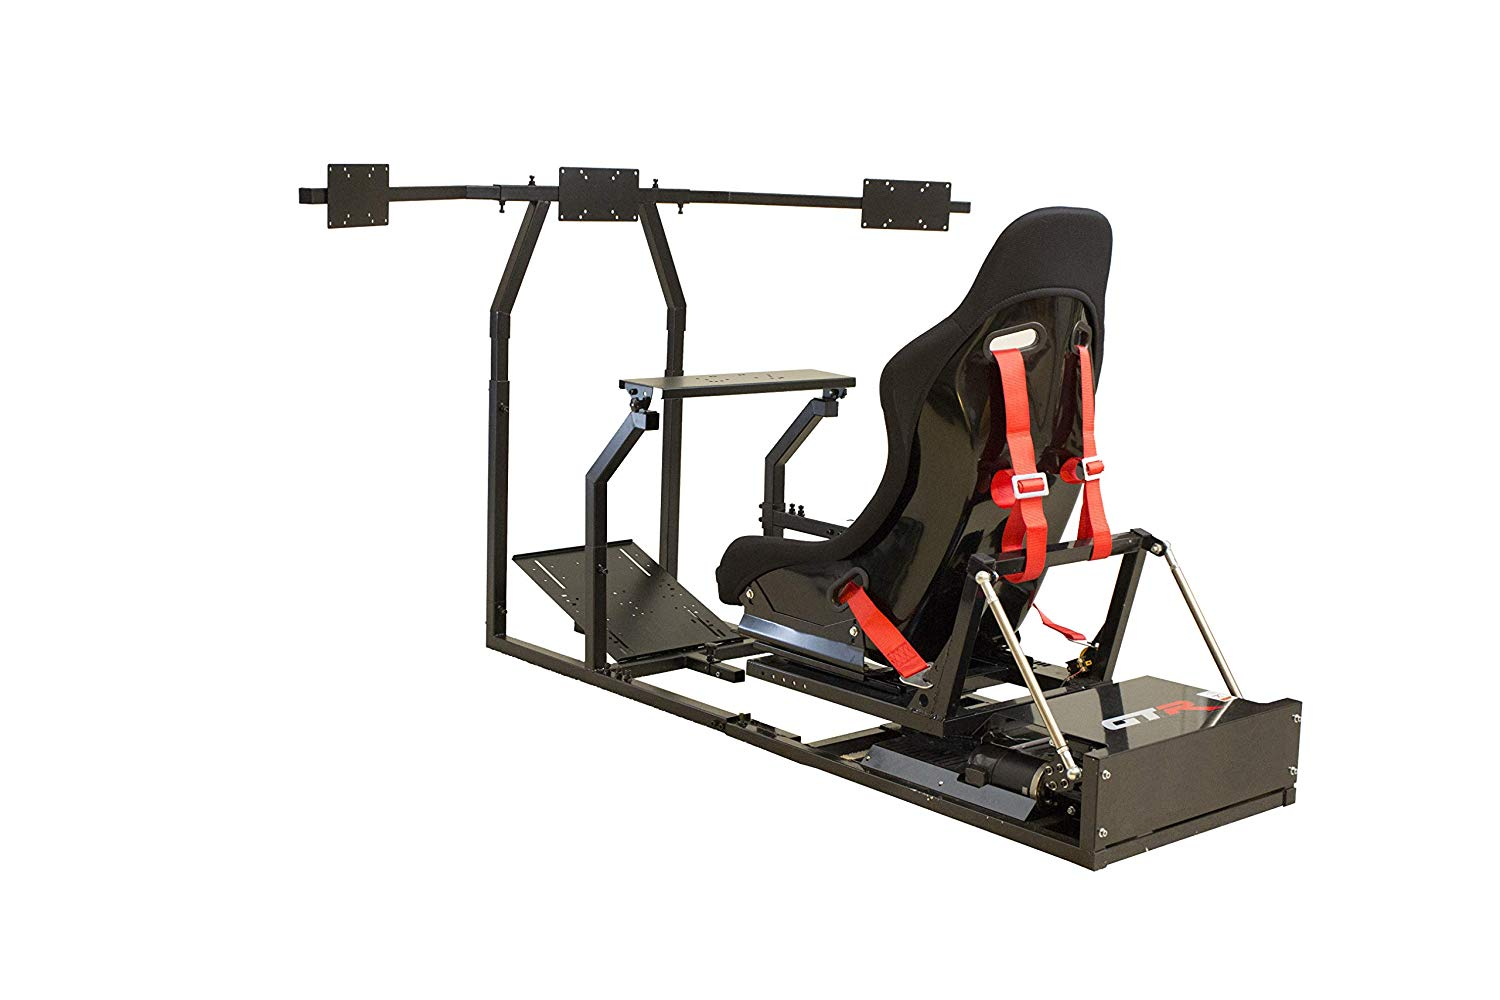 3. GTR Racing Simulator GTM-BLK-S105LBK GTM Motion Simulator Model Black Frame with Black Real Racing Seat, Driving Simulator Cockpit Gaming Chair with Gear Shifter Mount